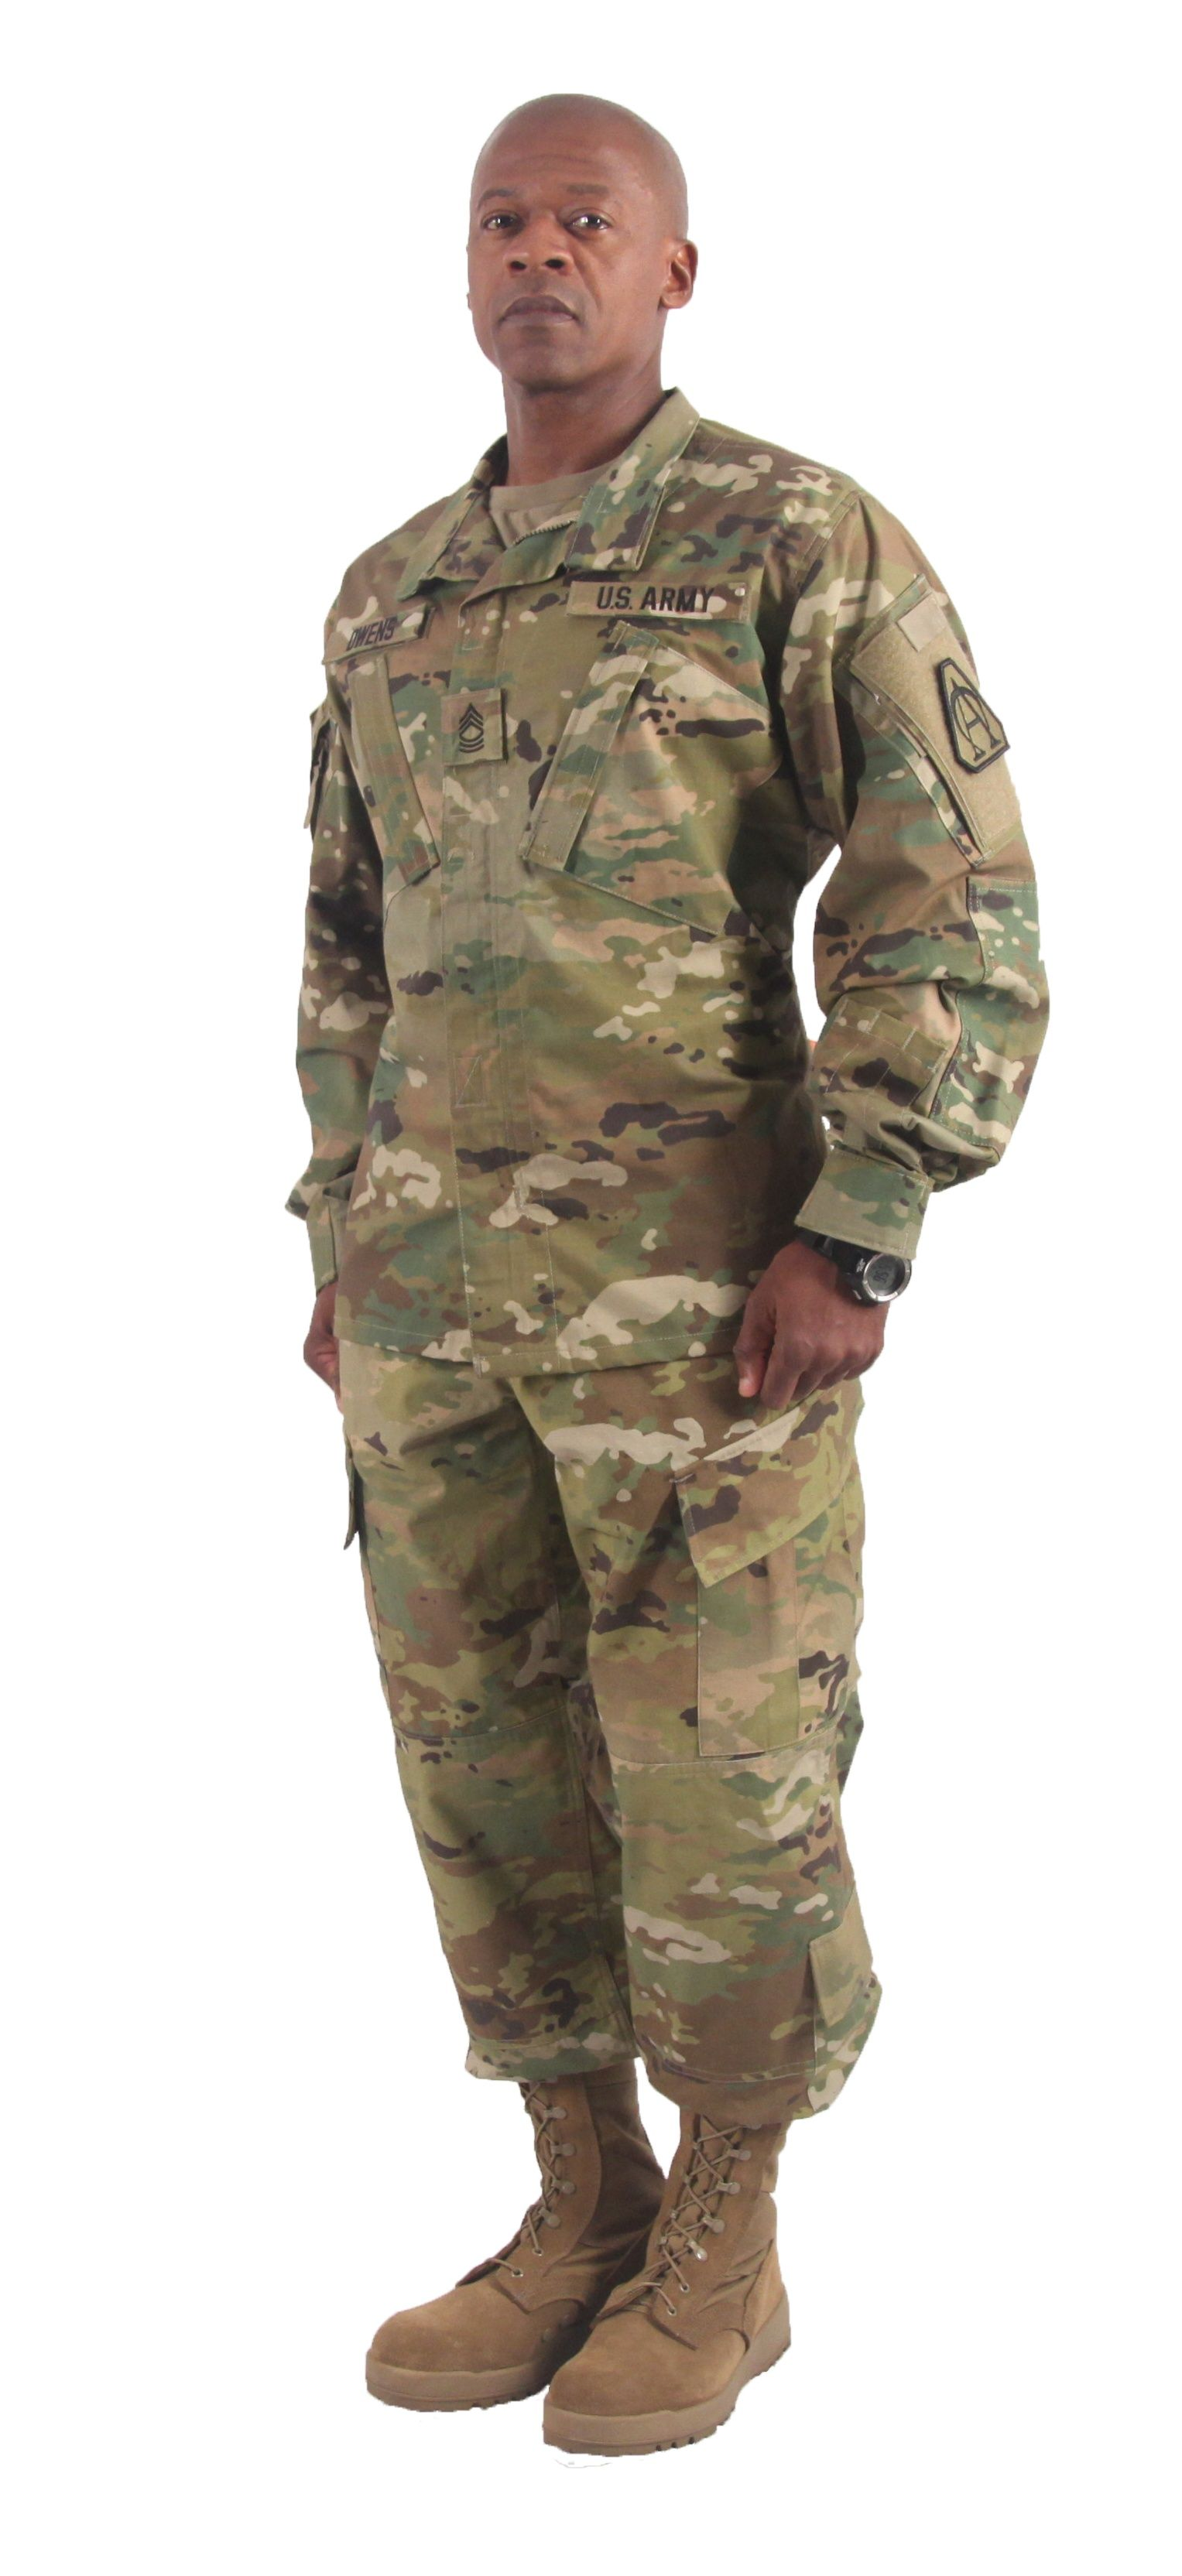 New Army camouflage pattern - OCP/Scorpion W2 | Tactical ... - photo#13